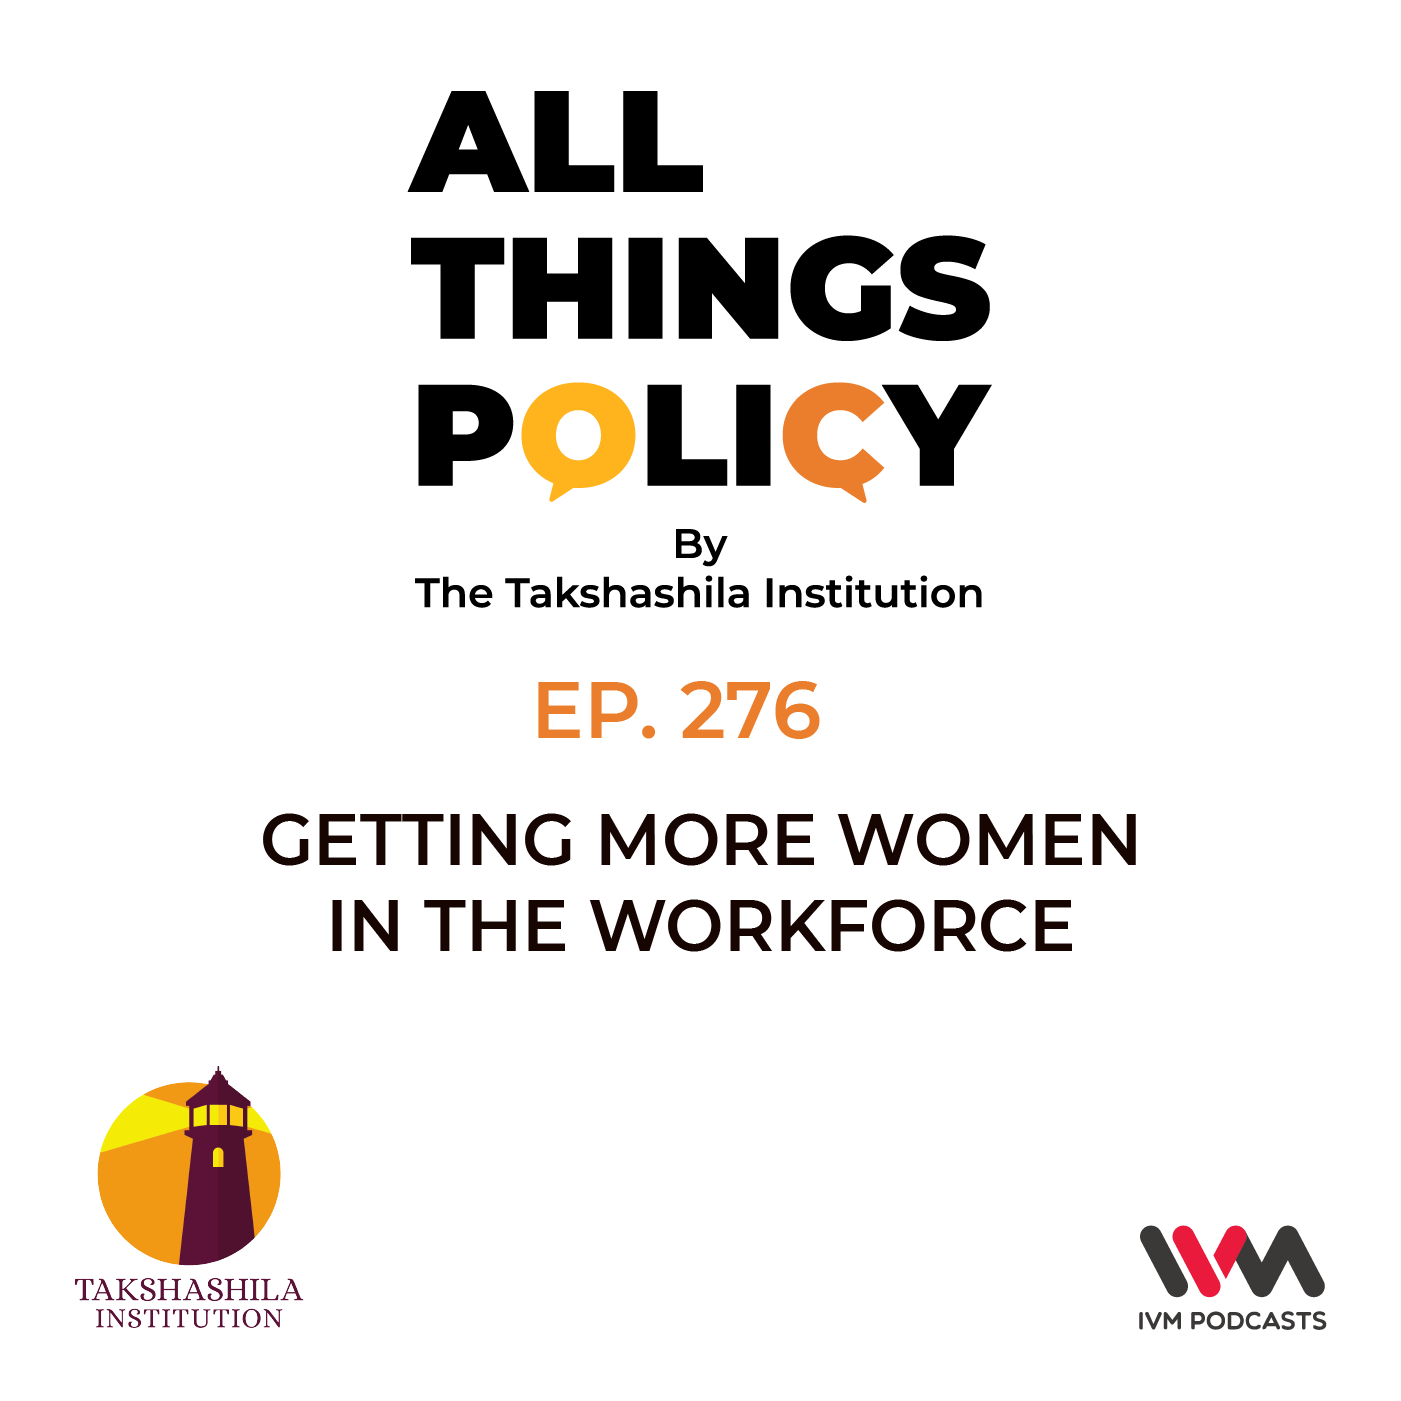 Ep. 276: Getting More Women in the Workforce